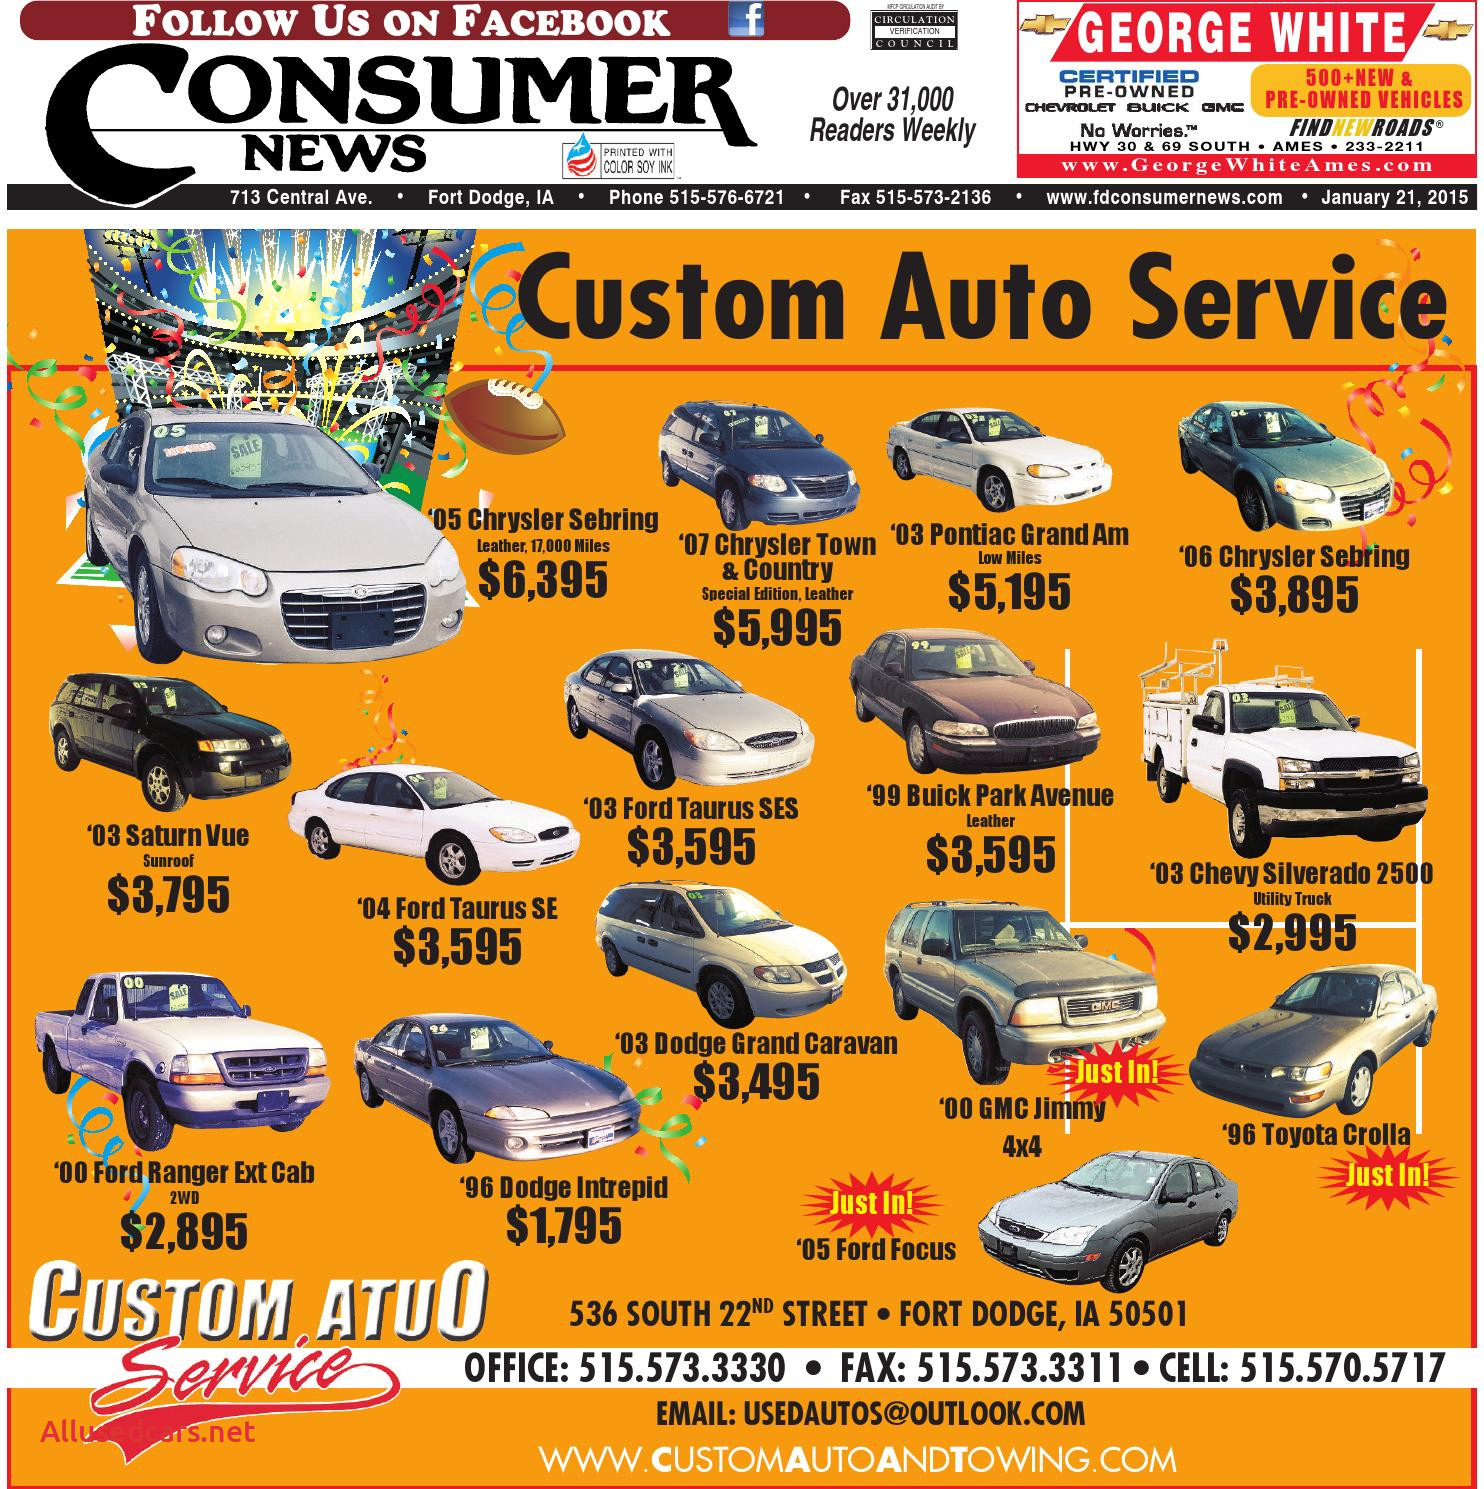 2011 Buick Enclave New 01 21 15 Consumer News by Consumer News issuu